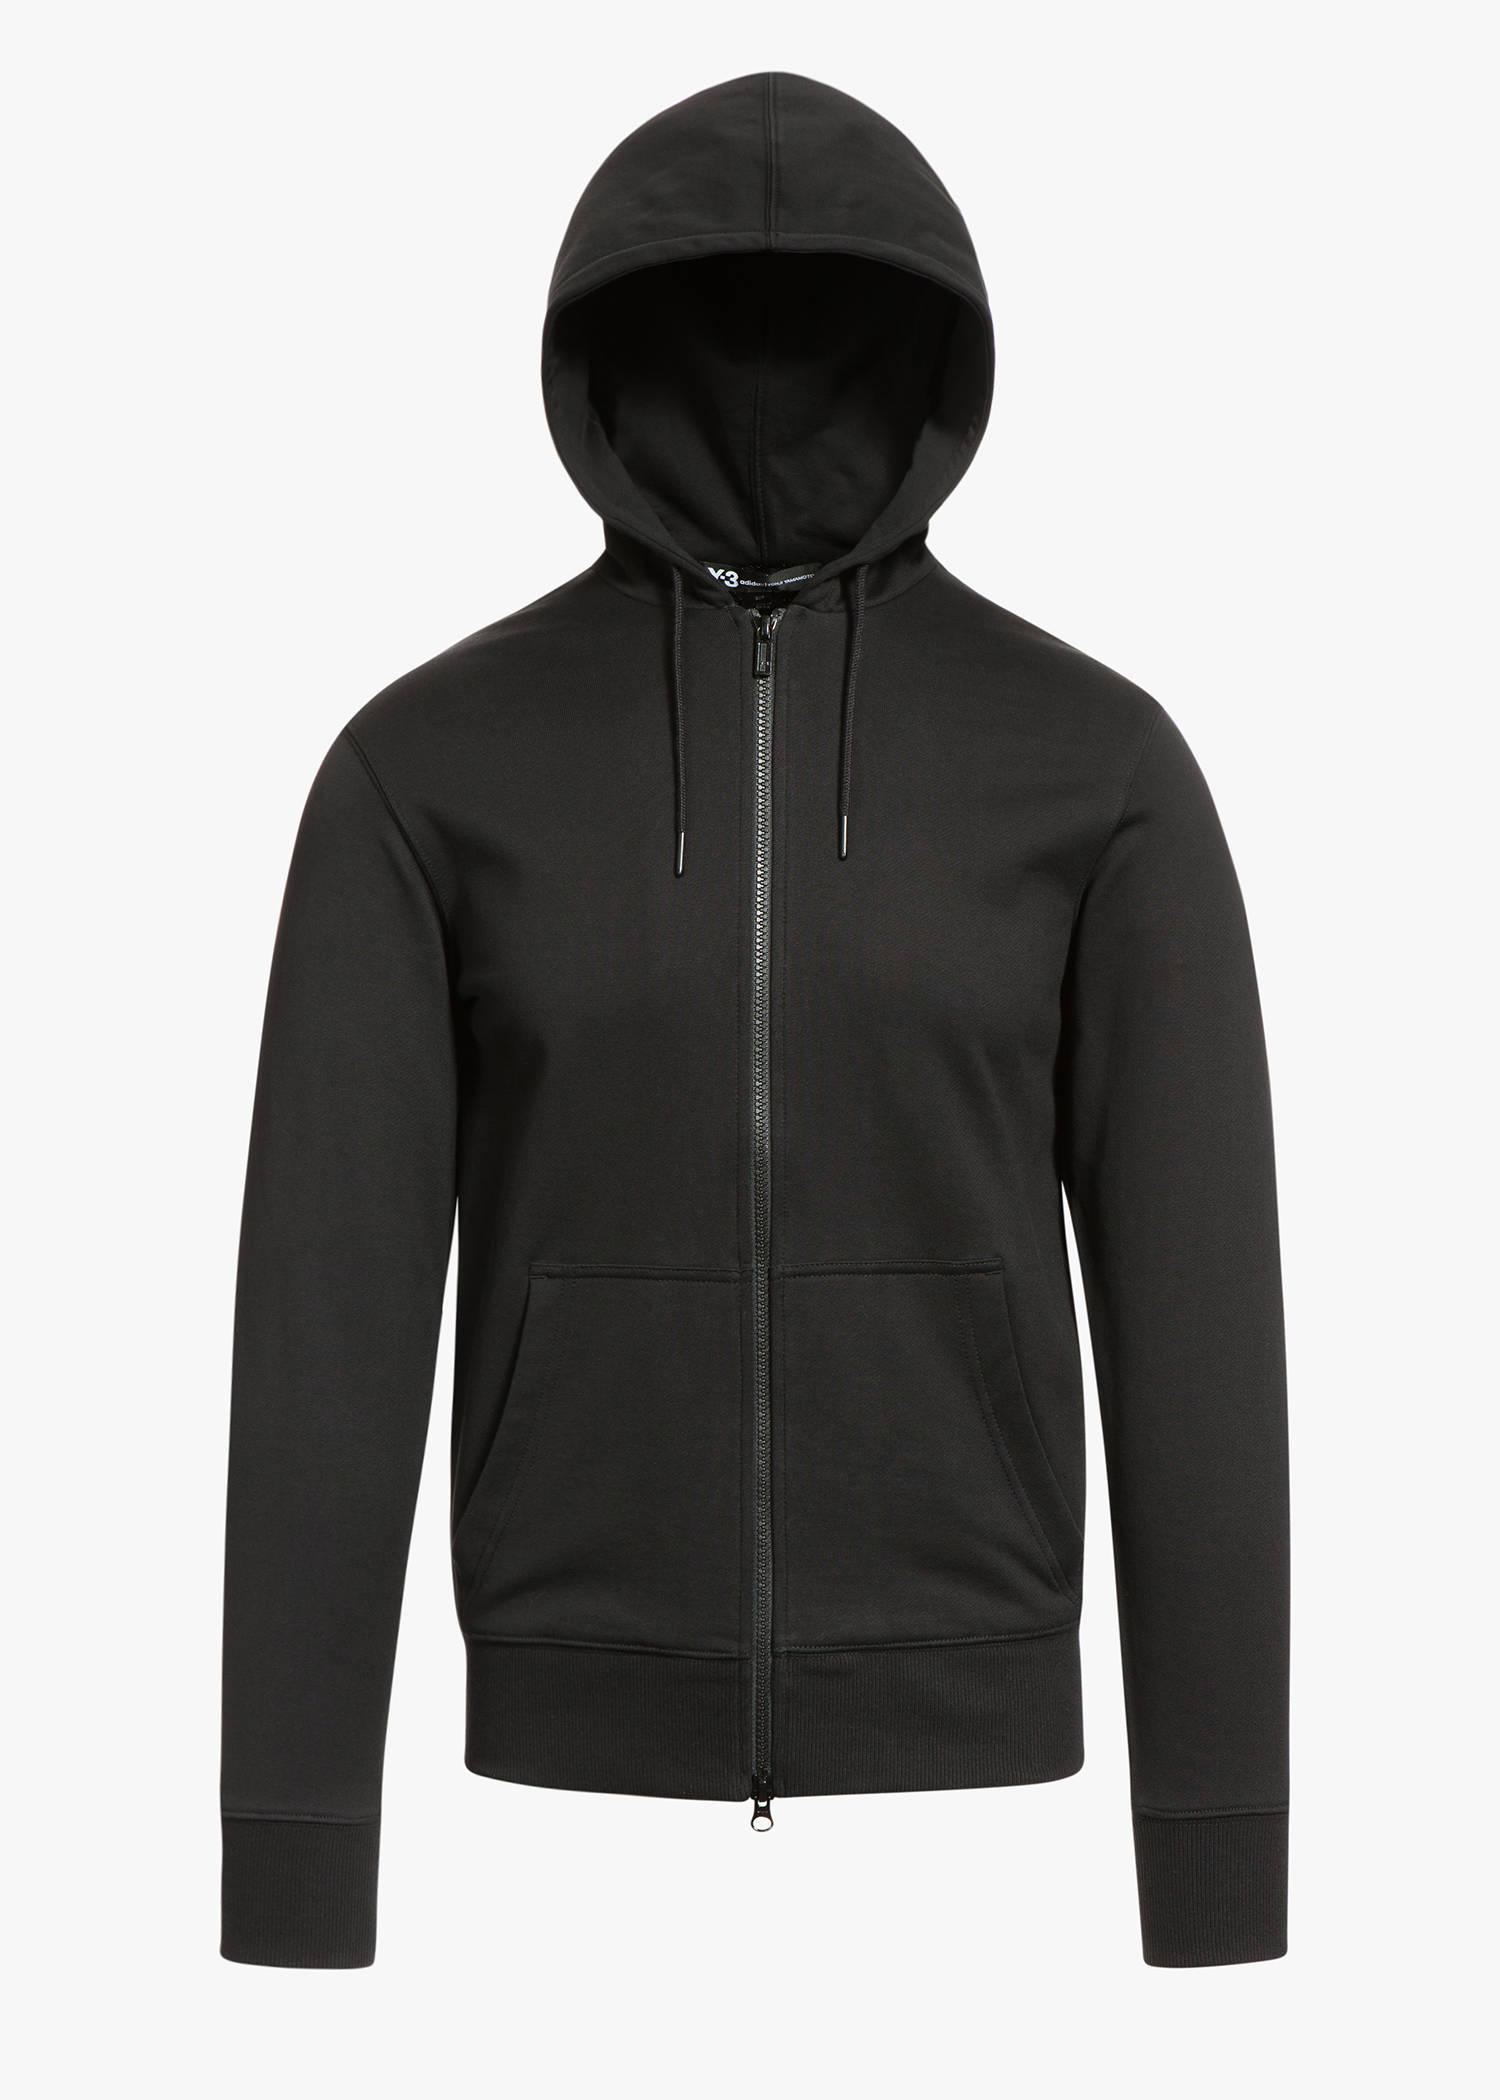 Y-3 Classic Sweat Zip Up Hoody In Charcoal Melange